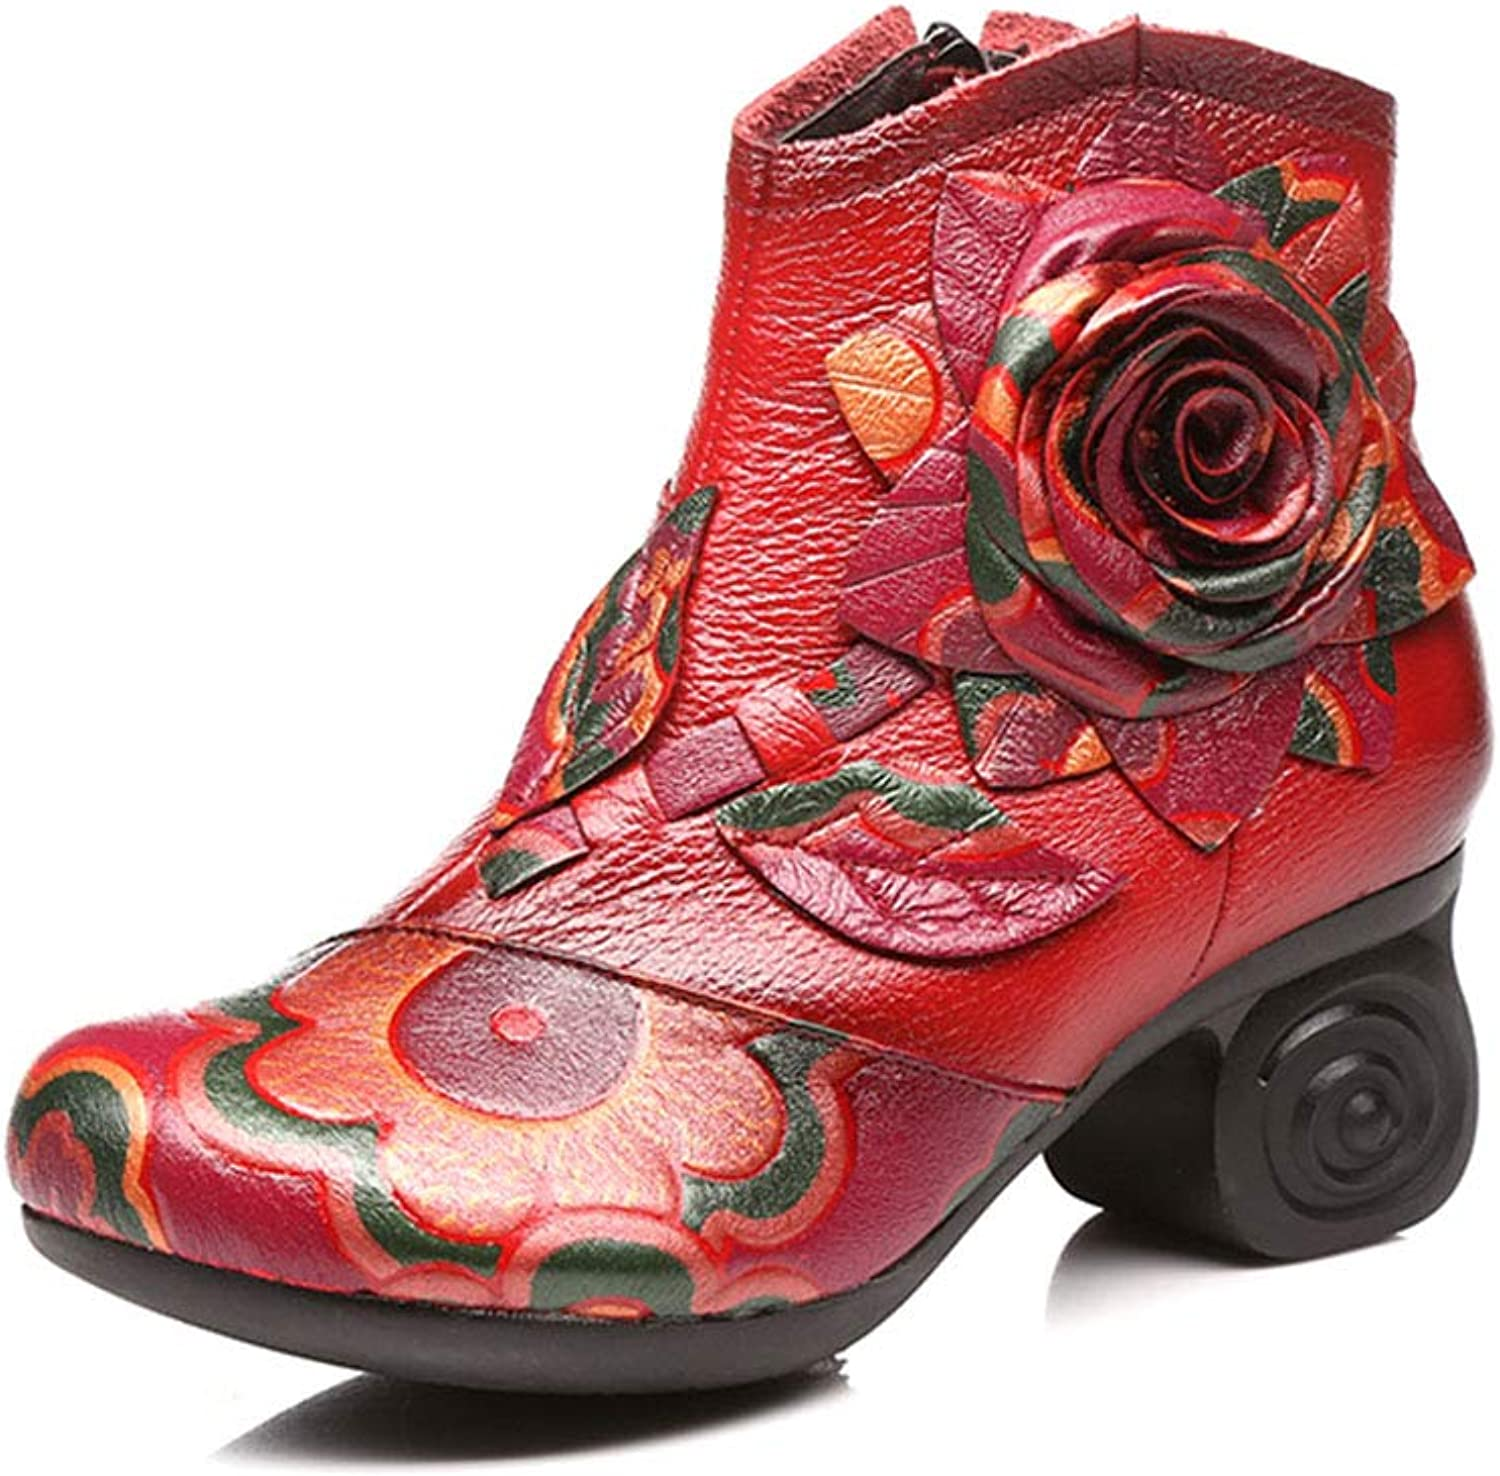 Women's Booties Leather Chunky Heel high Heel Round Ankle Boots Side Zipper Handmade Flowers Fashion Martin Boots Ethnic Style